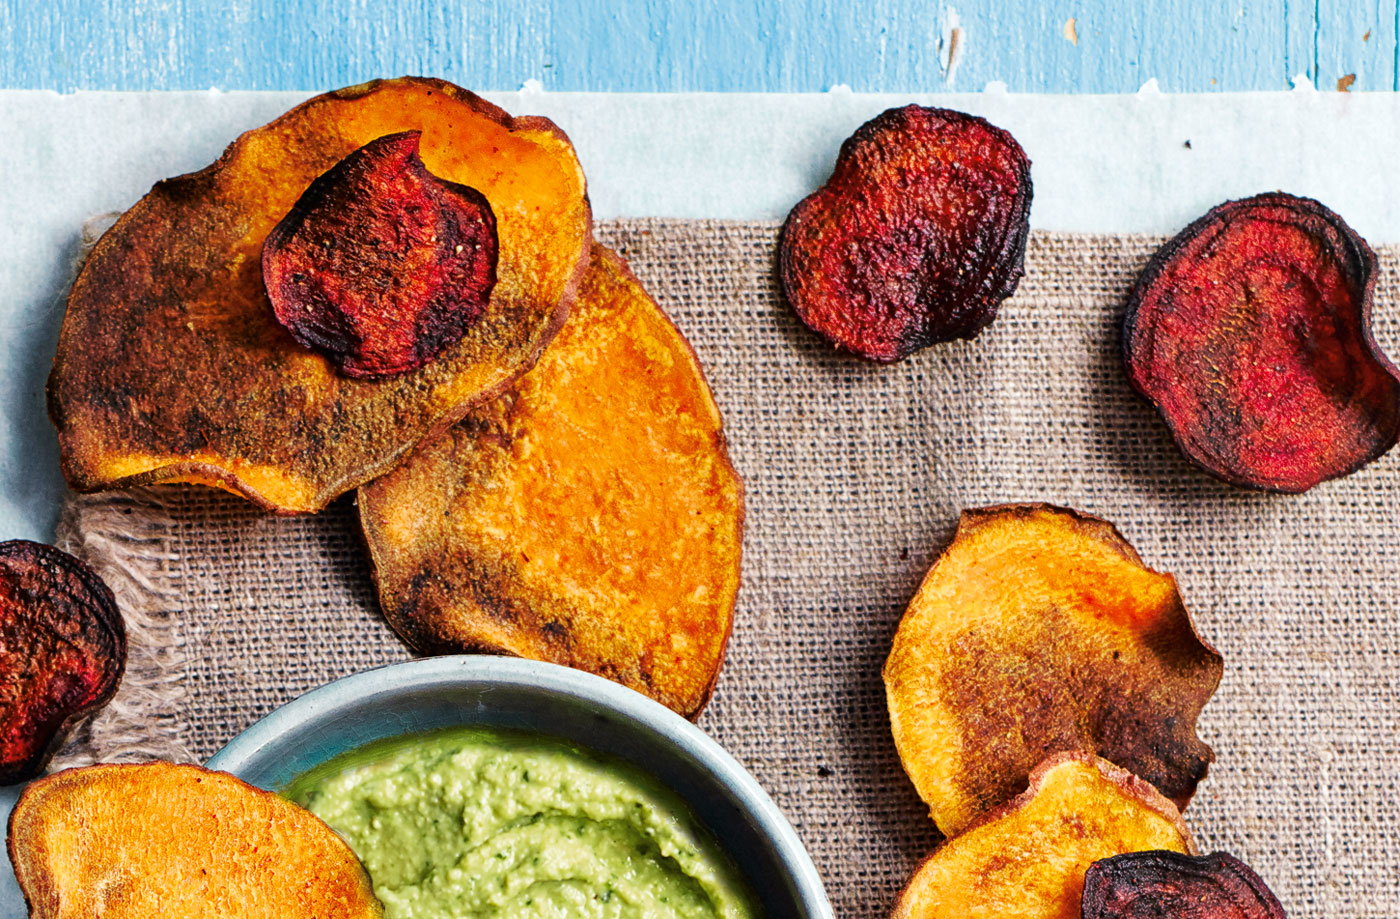 Baked beetroot and sweet potato crisps recipe